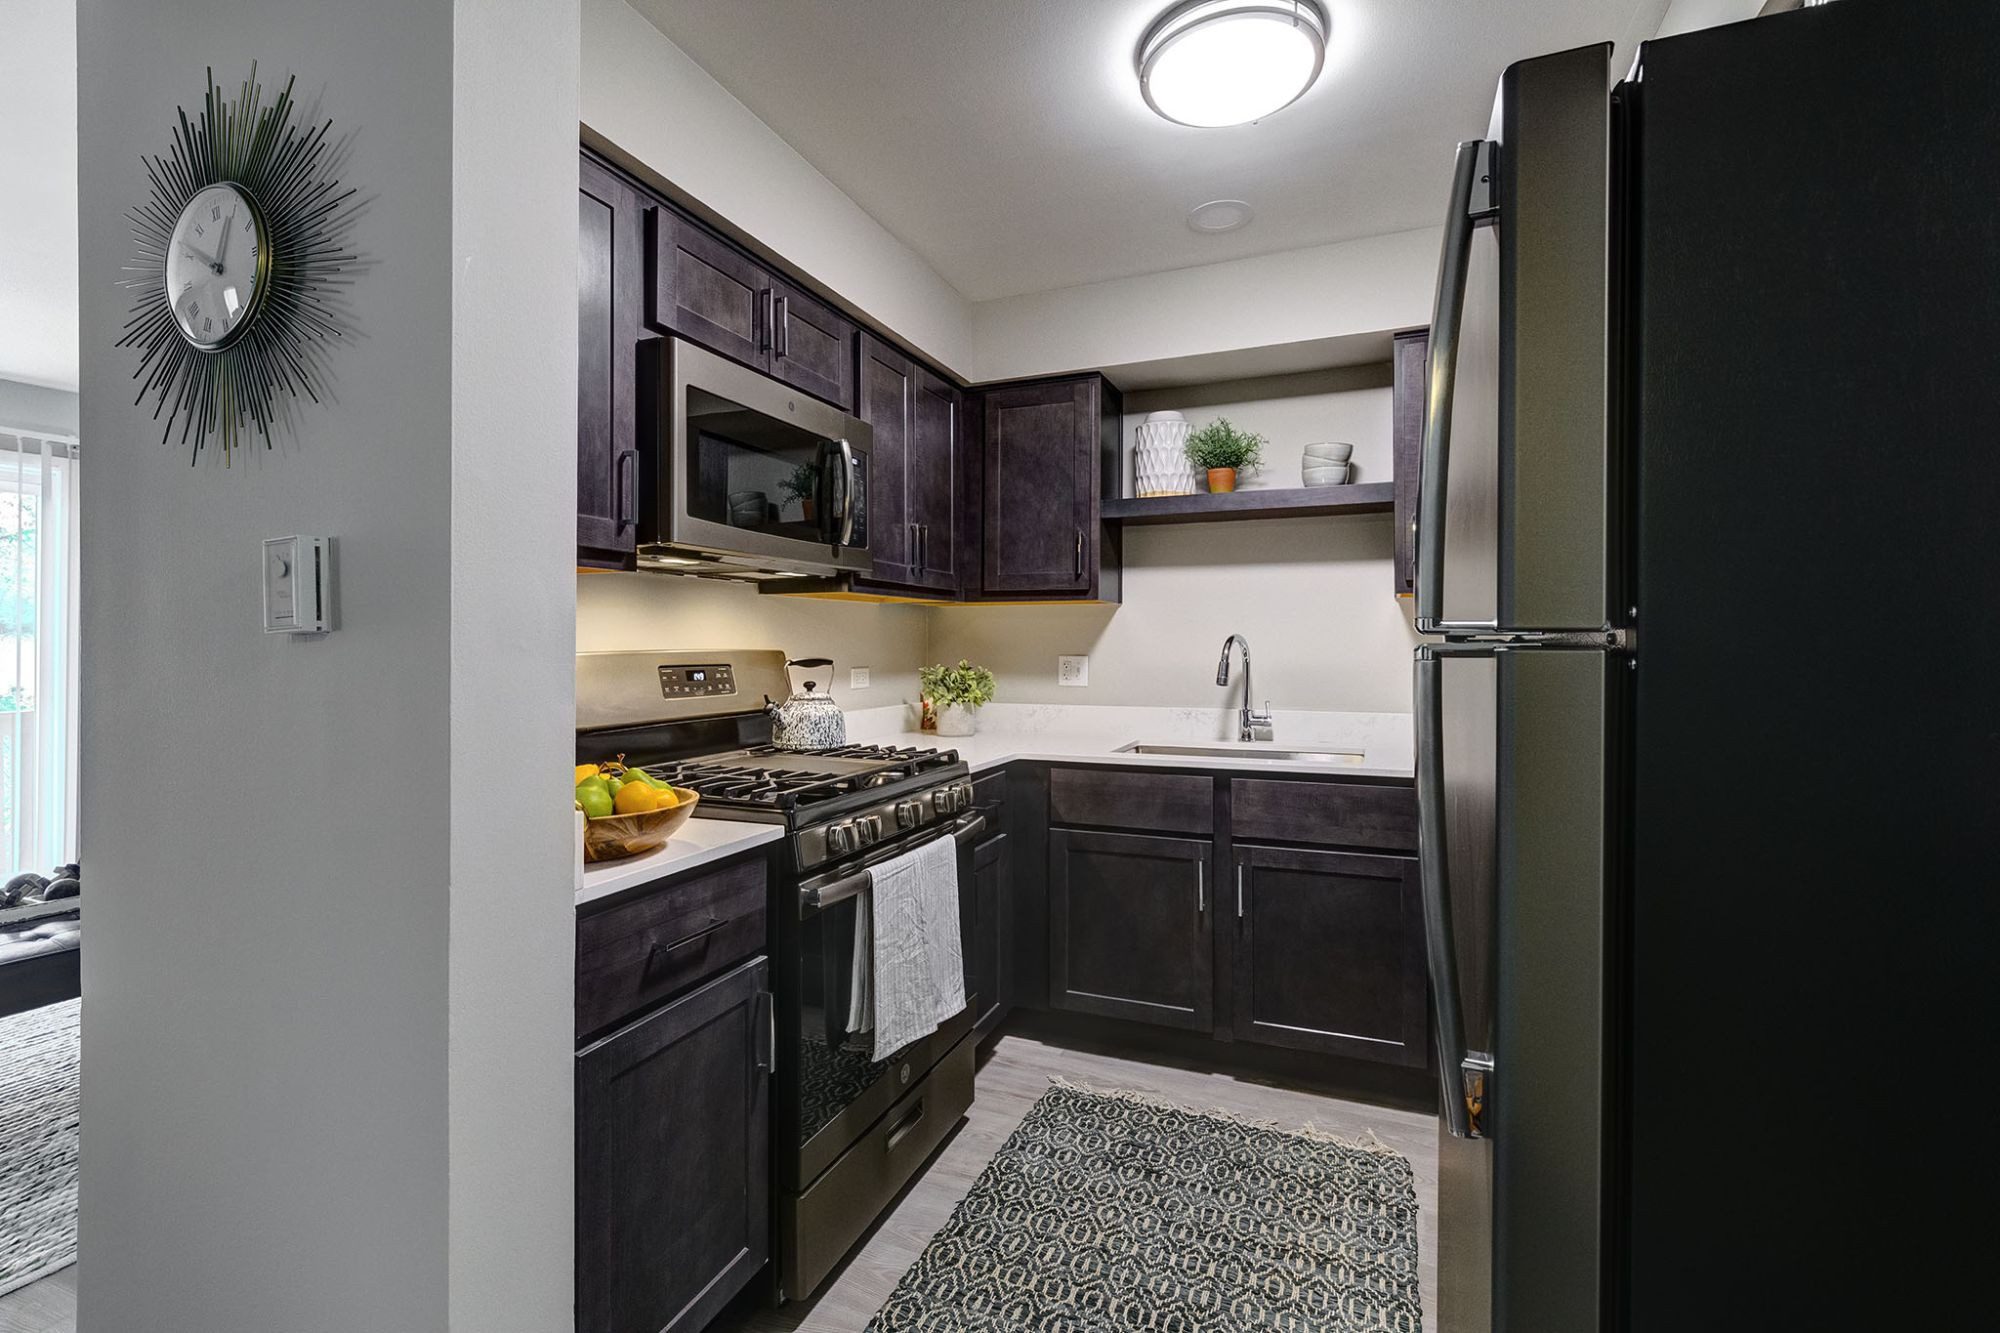 Apartments Near MWU Westmont Village for Midwestern University Students in Downers Grove, IL